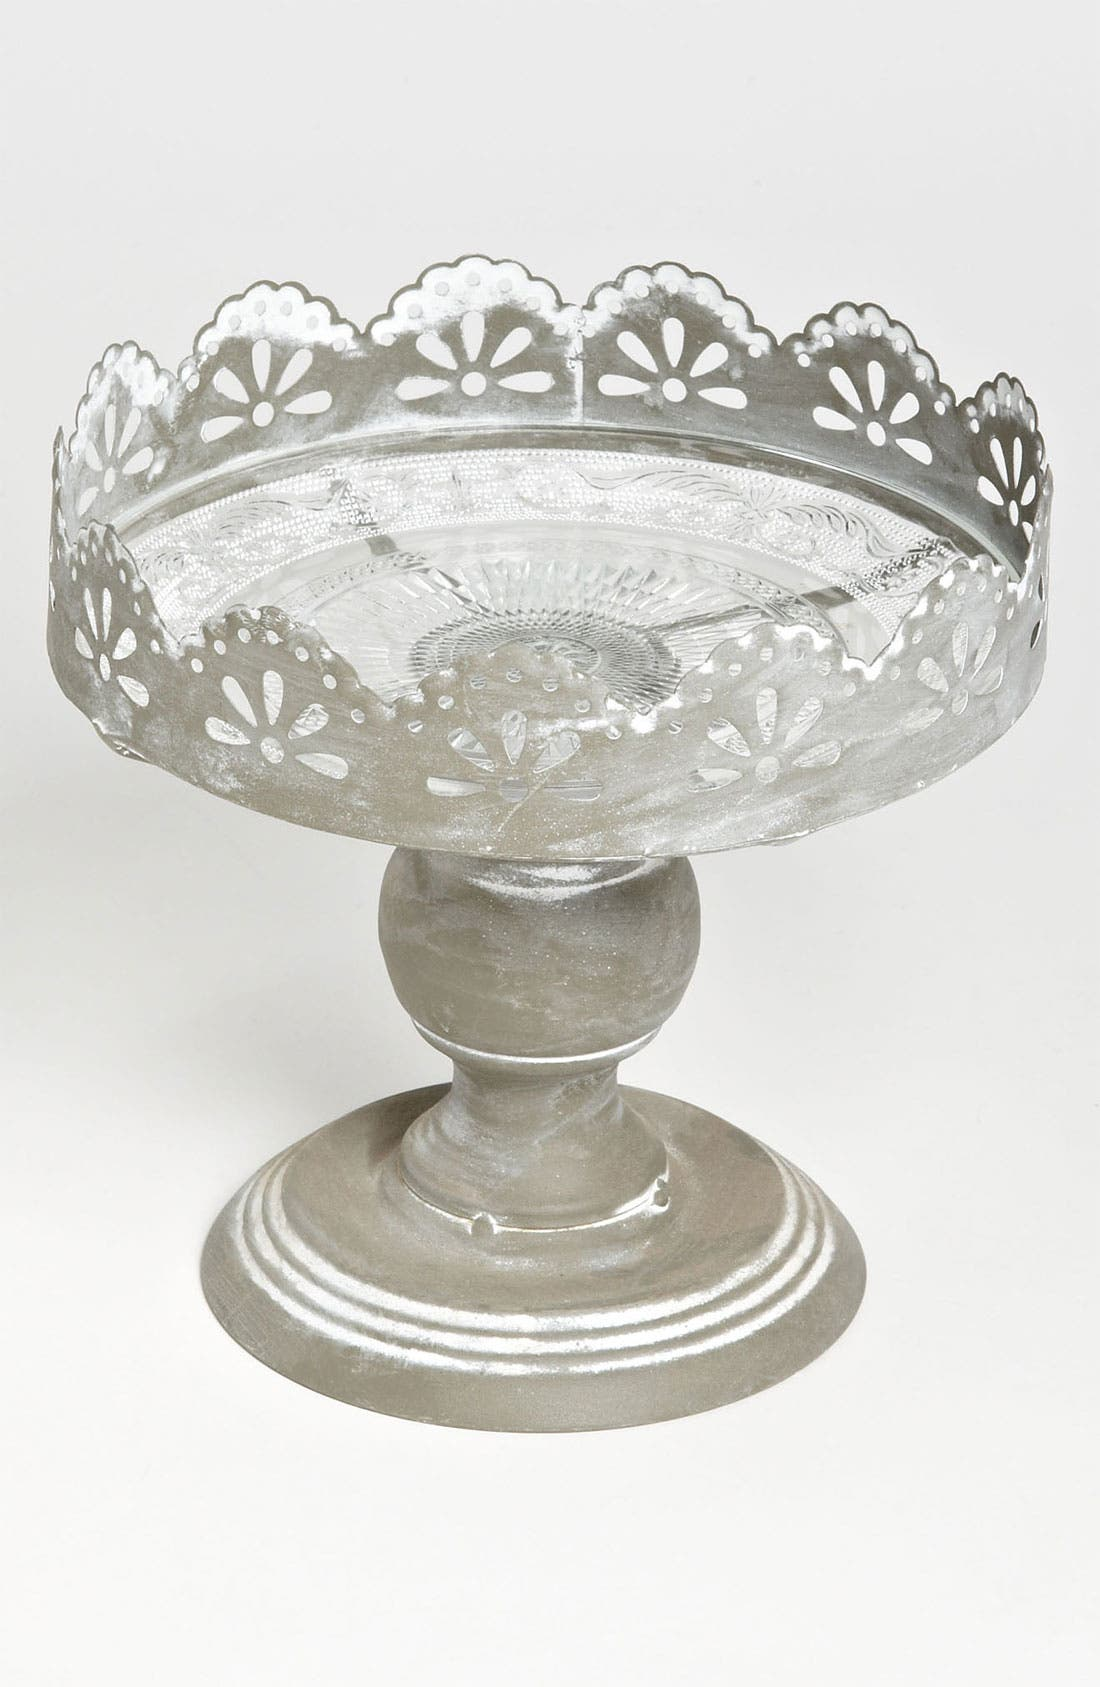 Main Image - Metal & Glass Pedestal Plate, Small